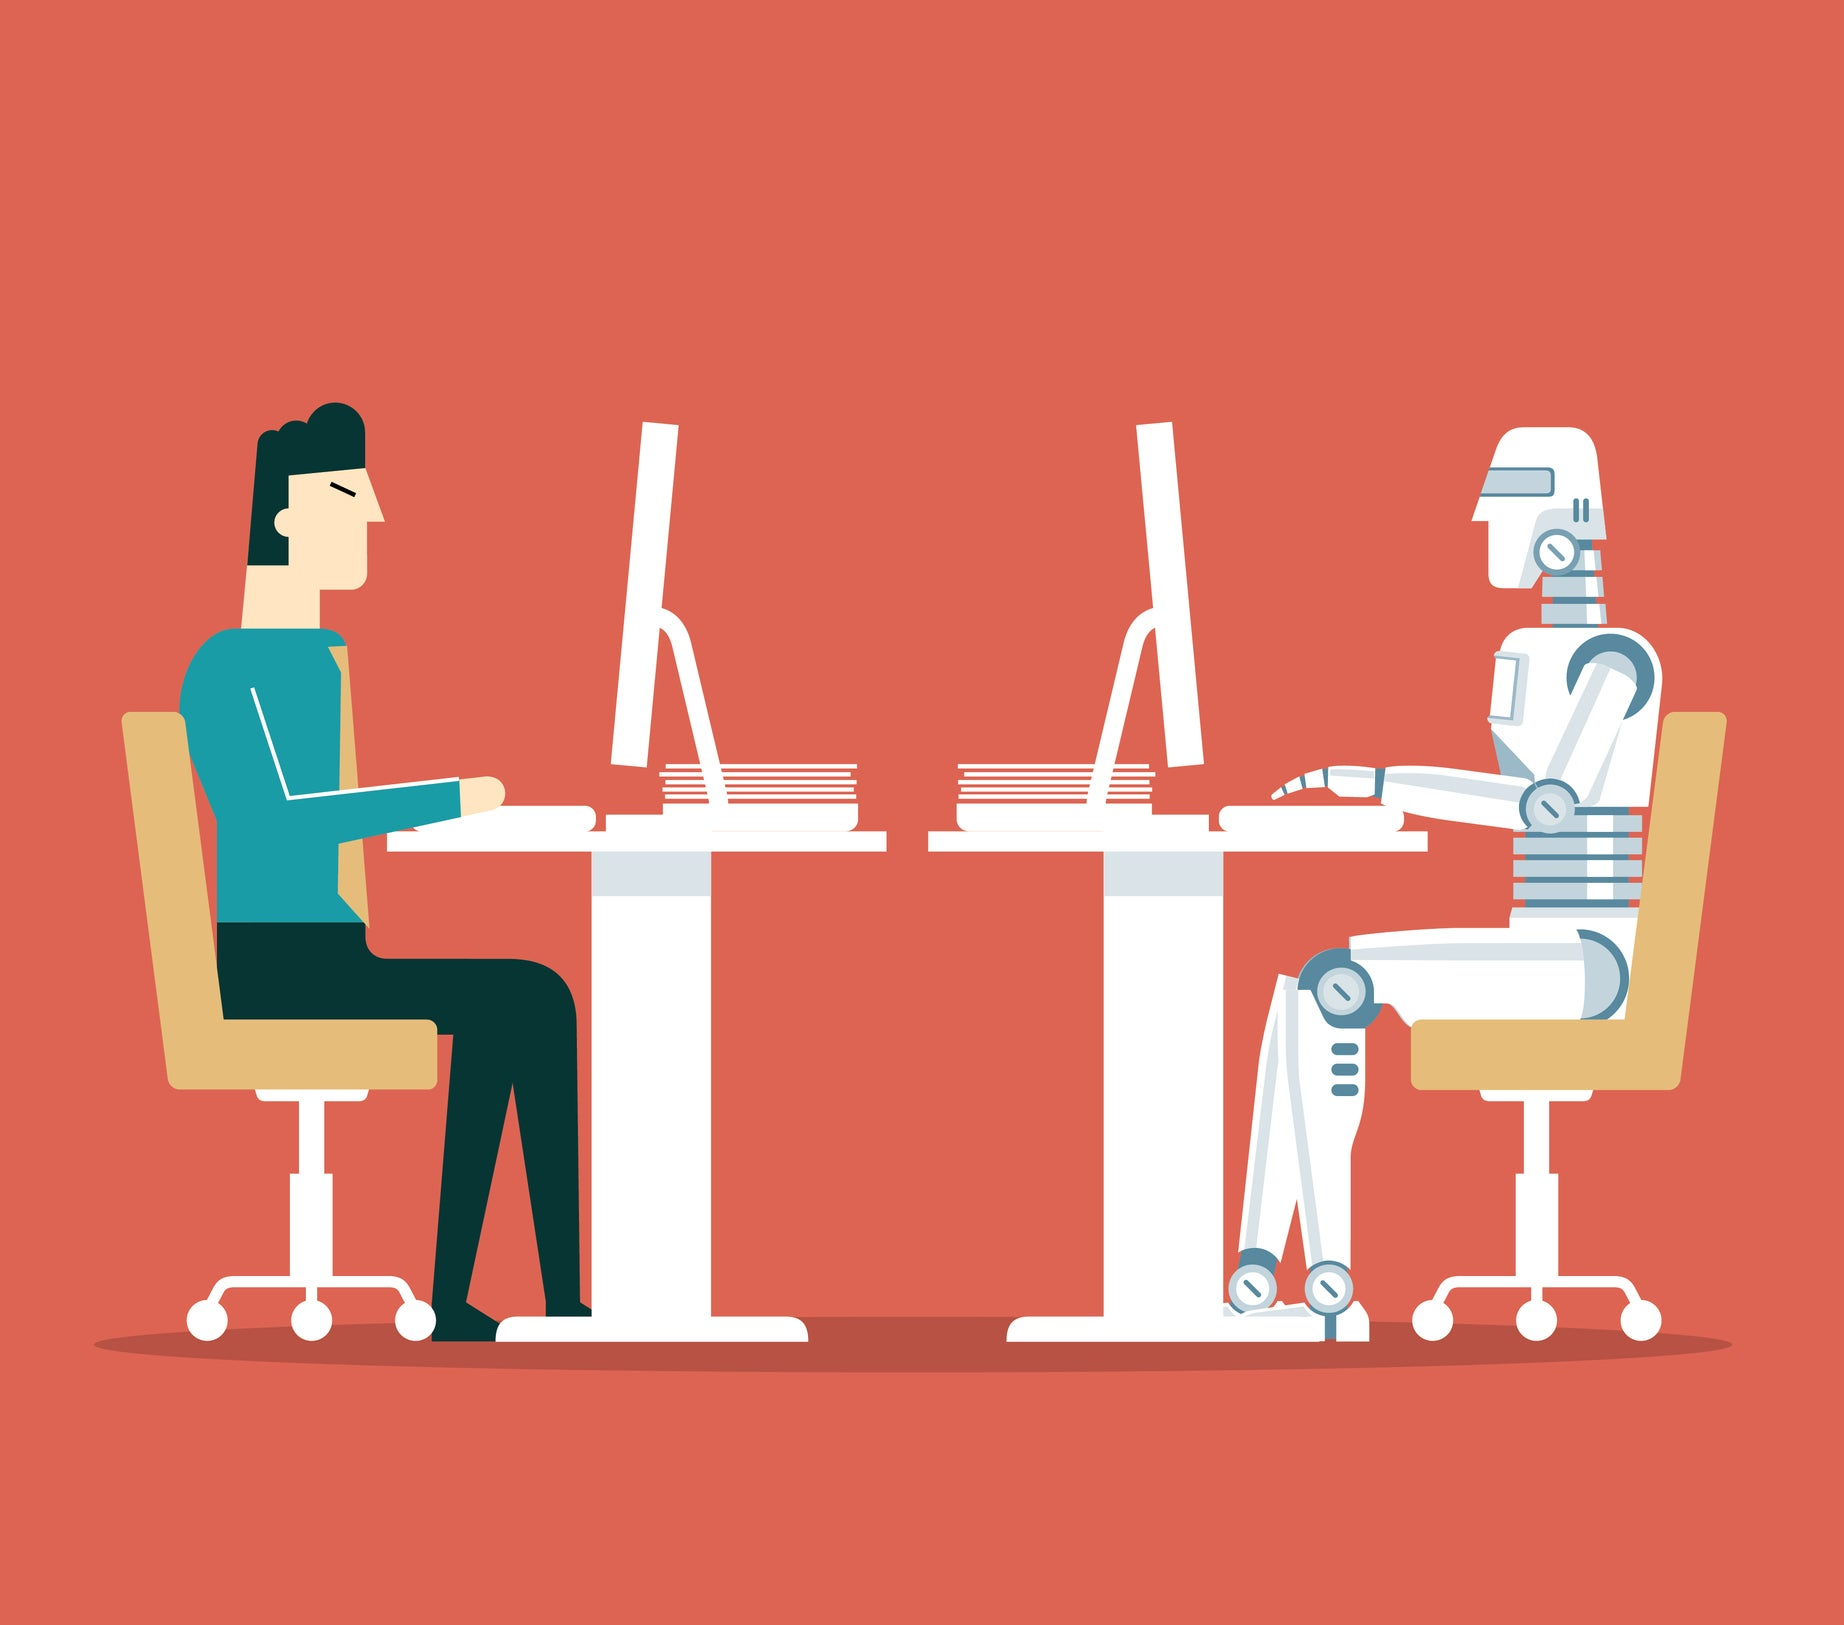 Machine Learning and Automation